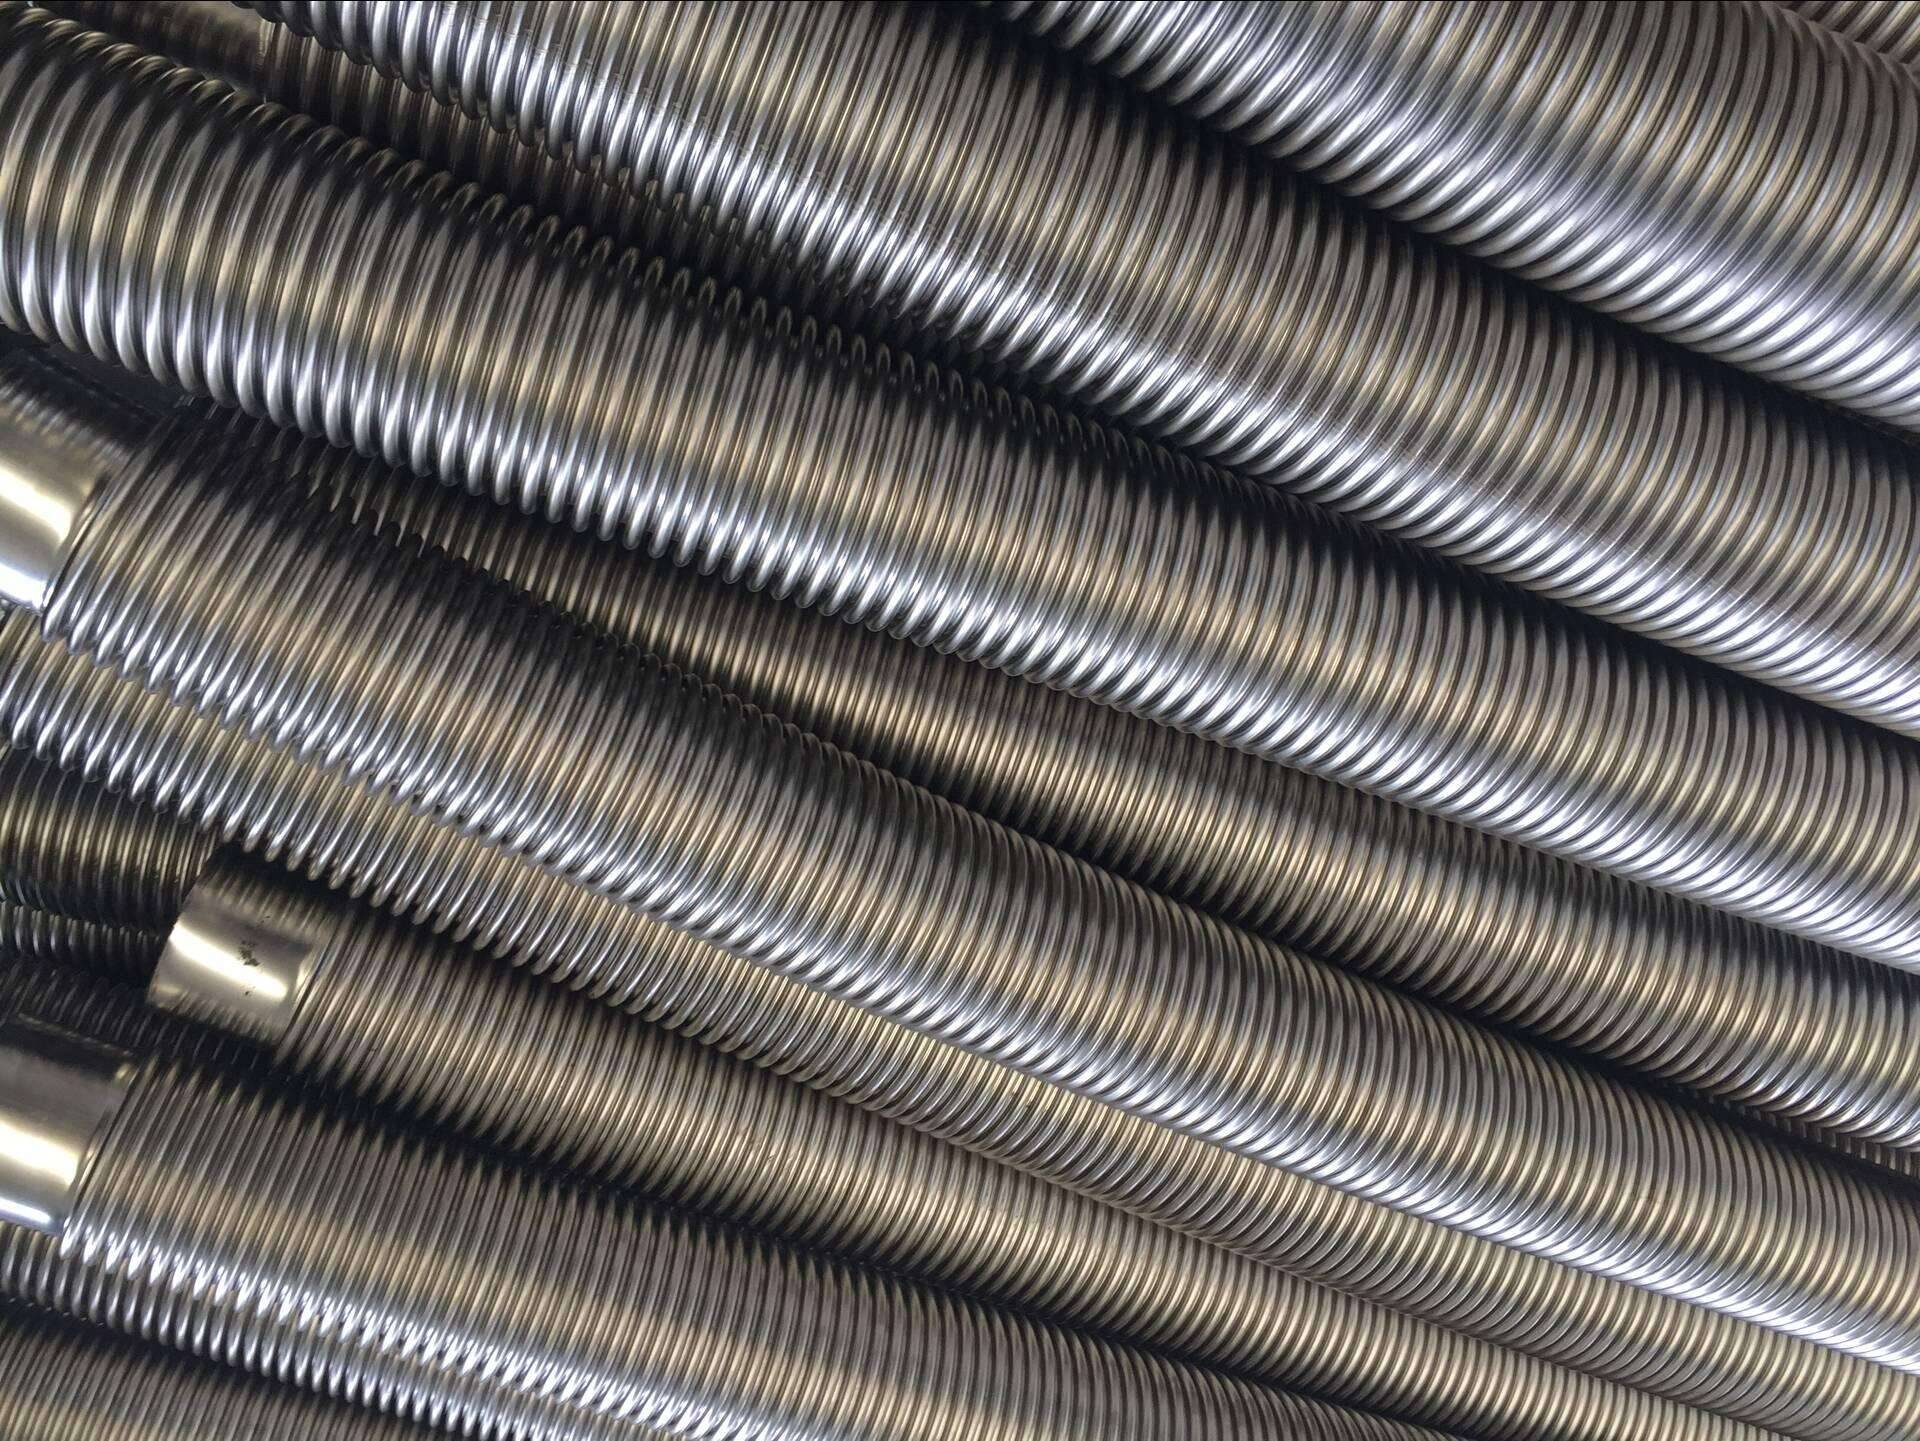 Annular convoluted flexible metal hoses